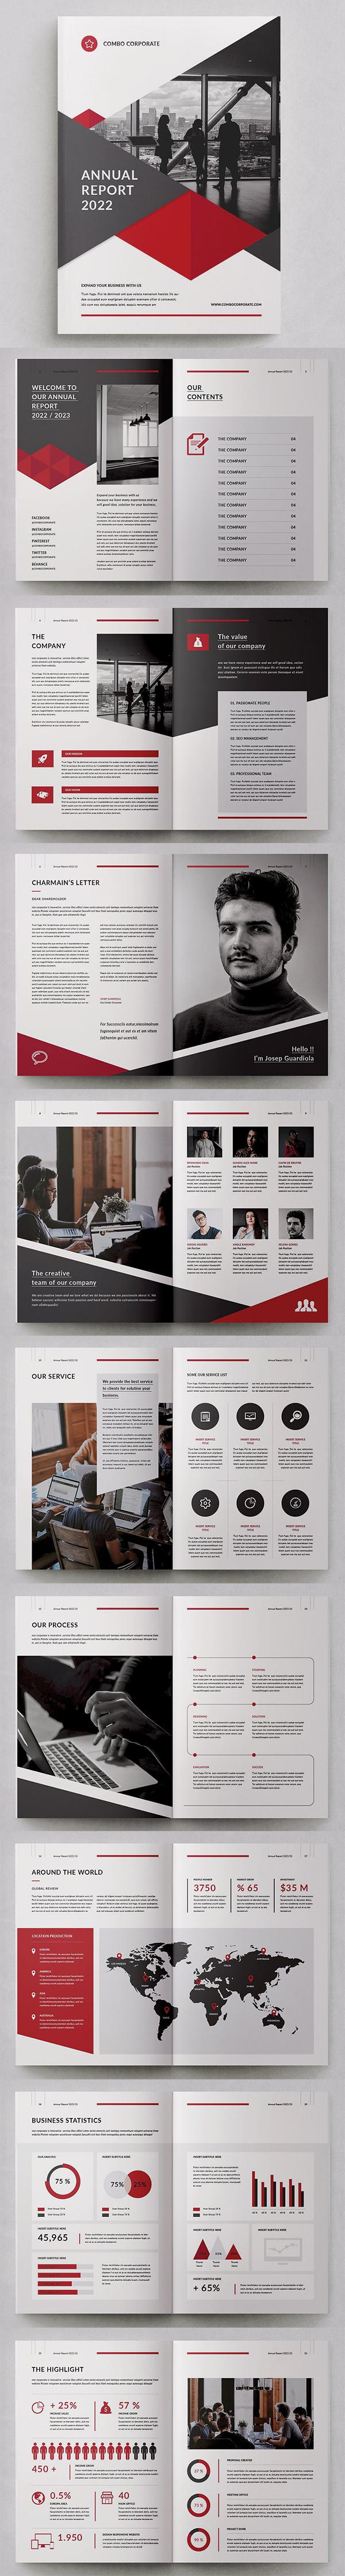 Awesome Annual Report Template